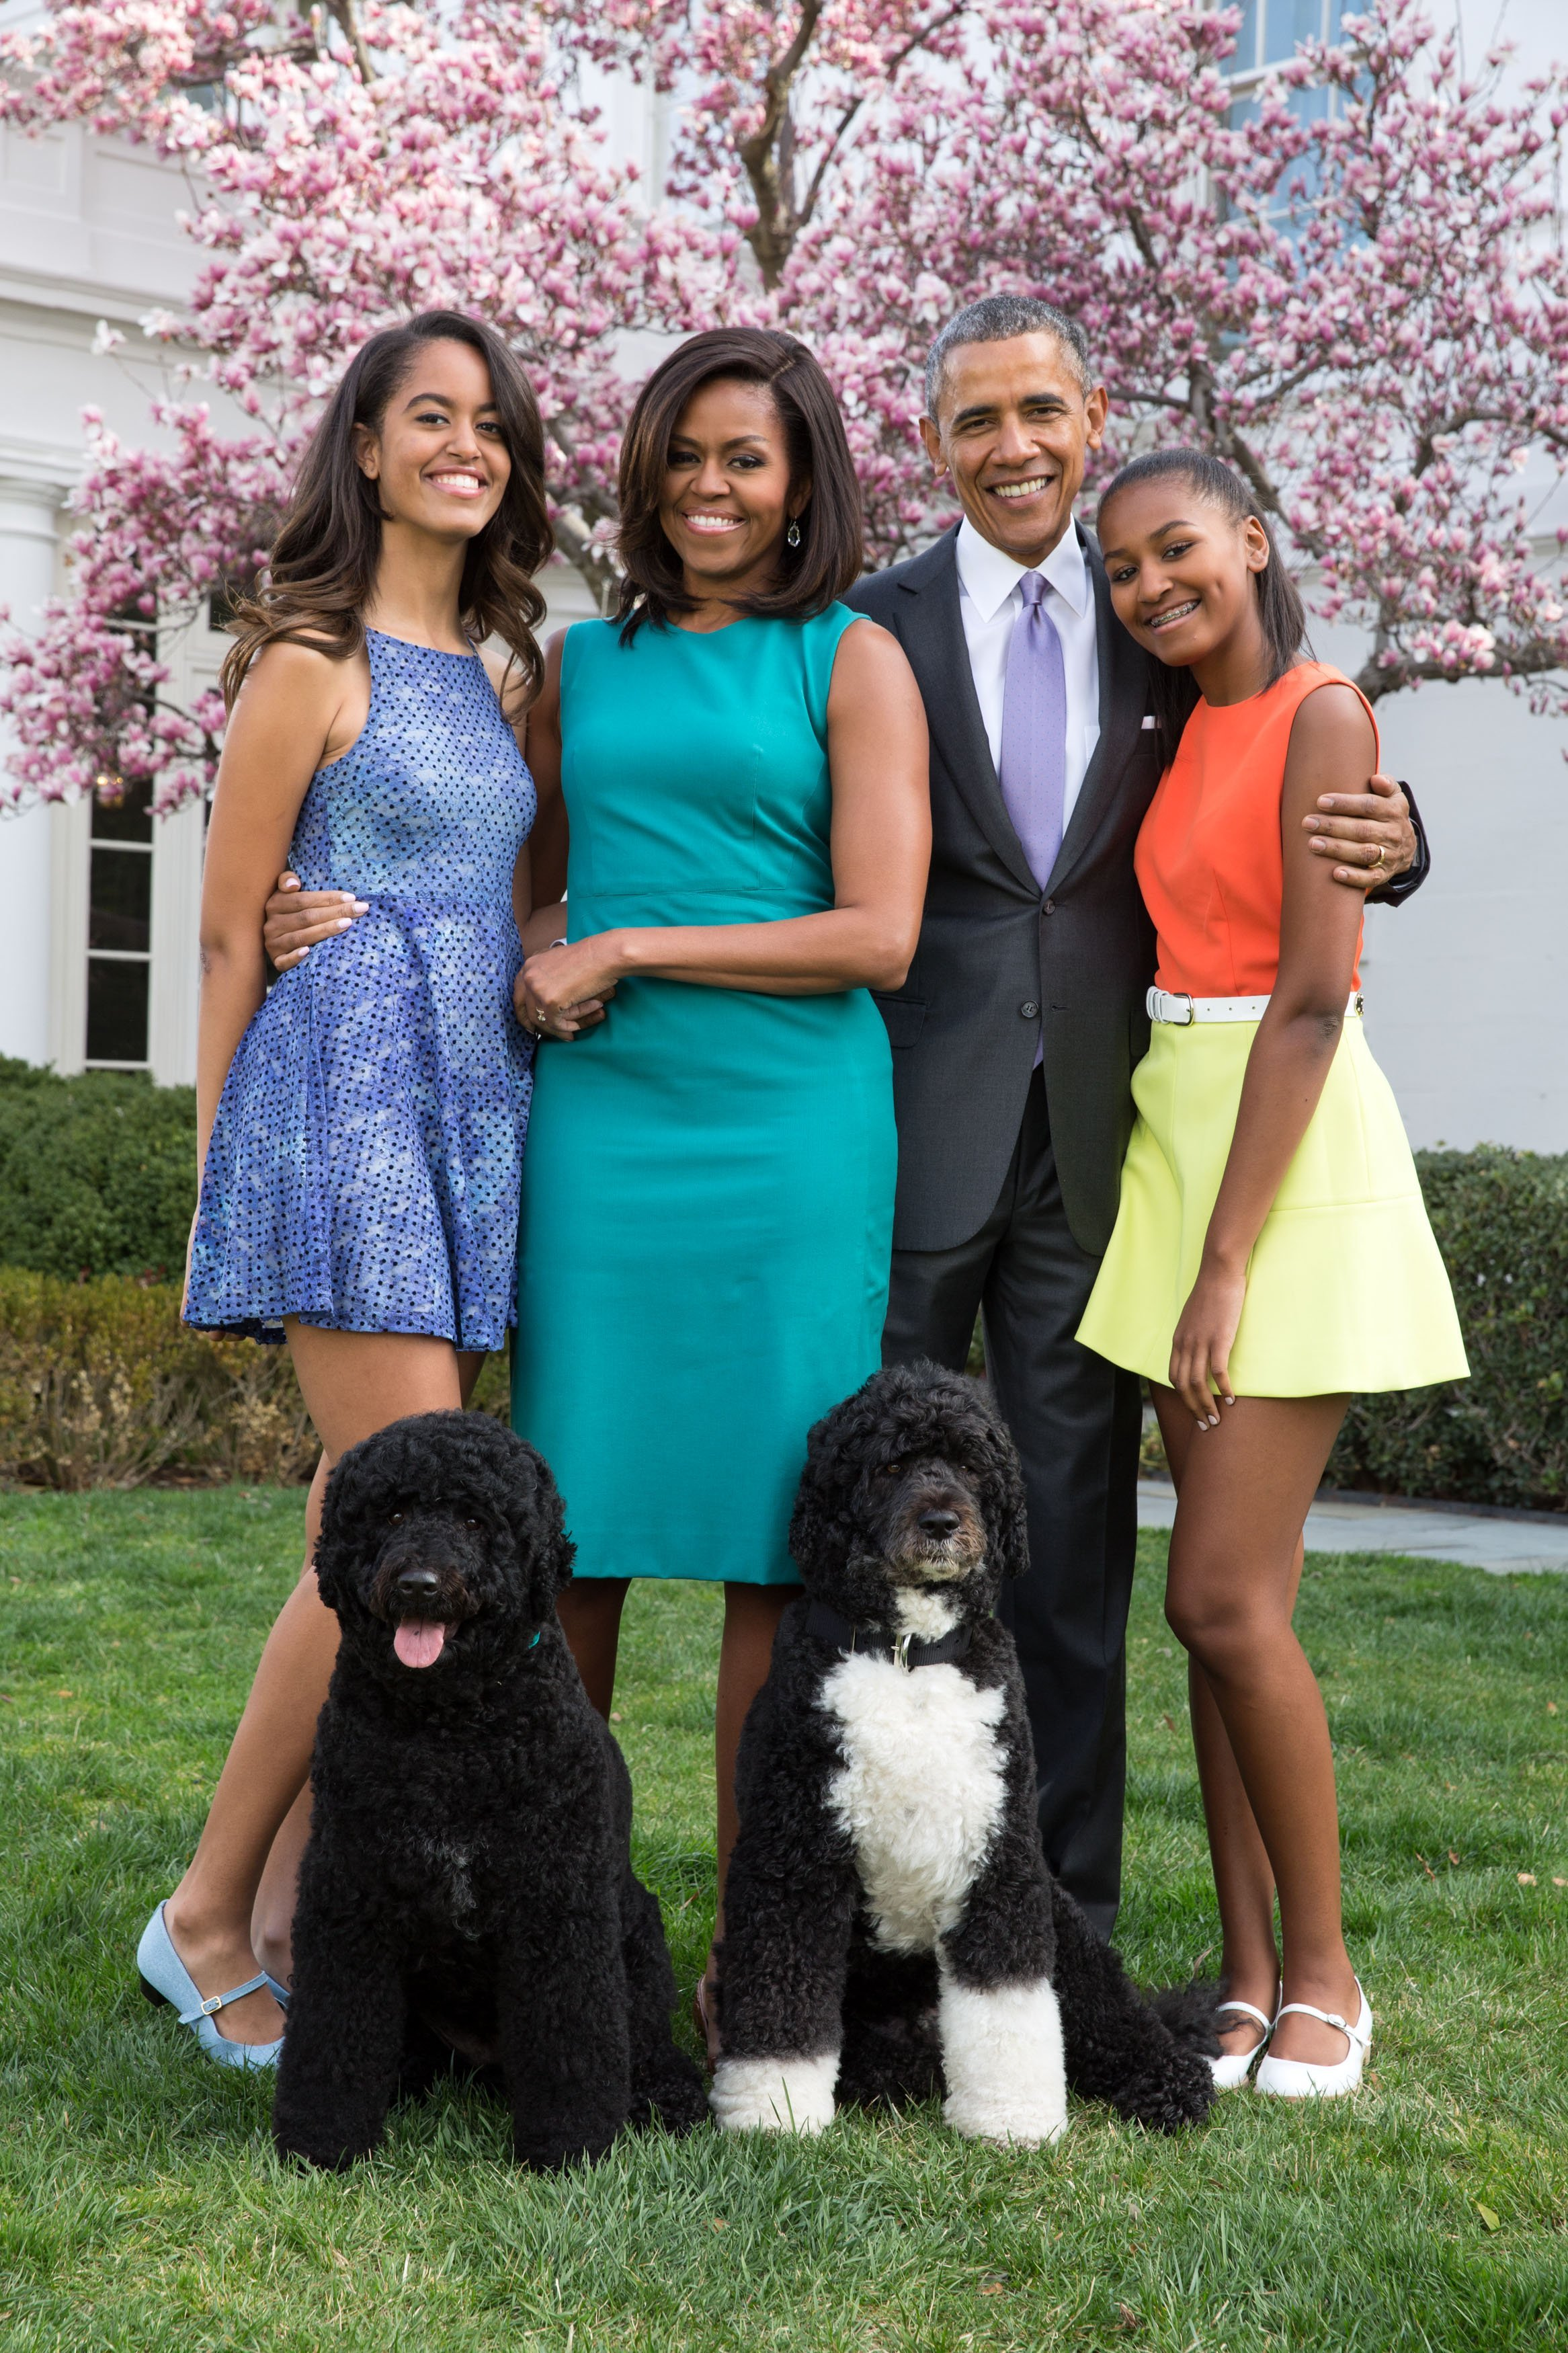 President Barack Obama, First Lady Michelle Obama, and daughters Malia (L) and Sasha (R) with their pets in the Rose Garden of the White House on Easter Sunday, April 5, 2015, in Washington, DC.